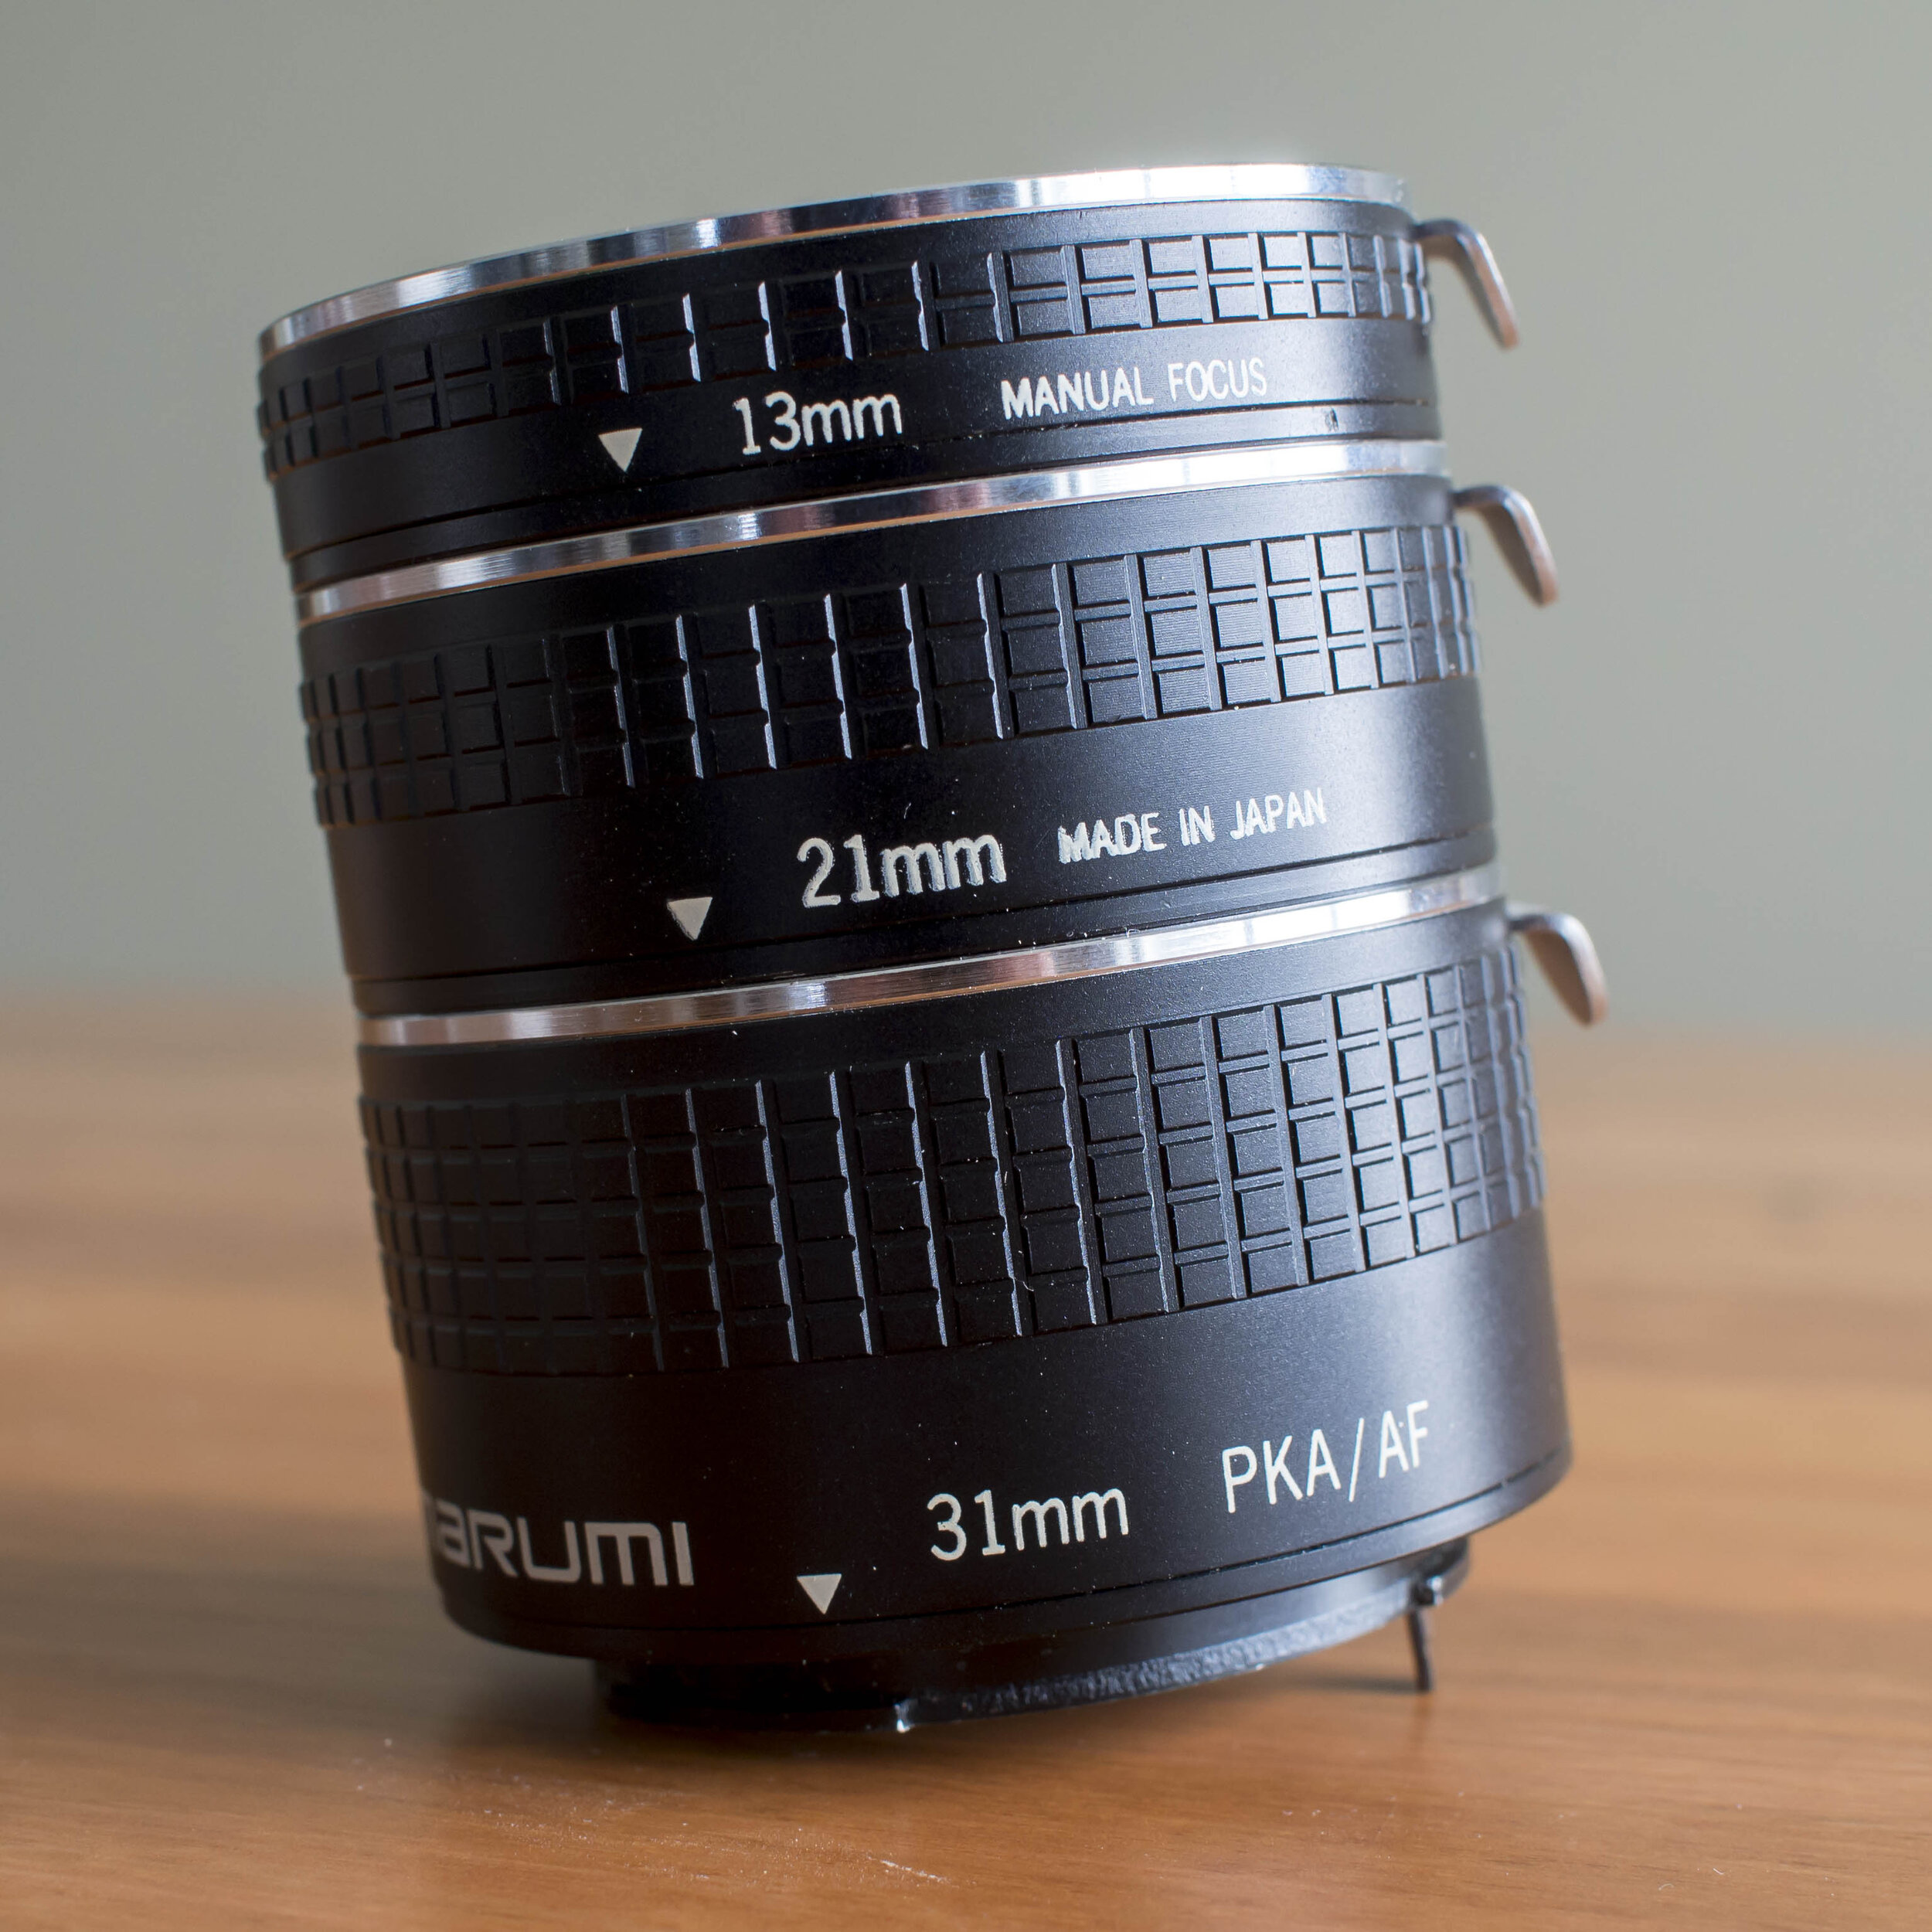 The usual set of three extension tubes. The shortest one will have little effect on longer lenses except to rob them of infinity focus, but the longer one on a shorter 50mm lens would likely produce 1:2 or closer magnification at the cost of about 1 and a 1/2 full shutter speeds of light.